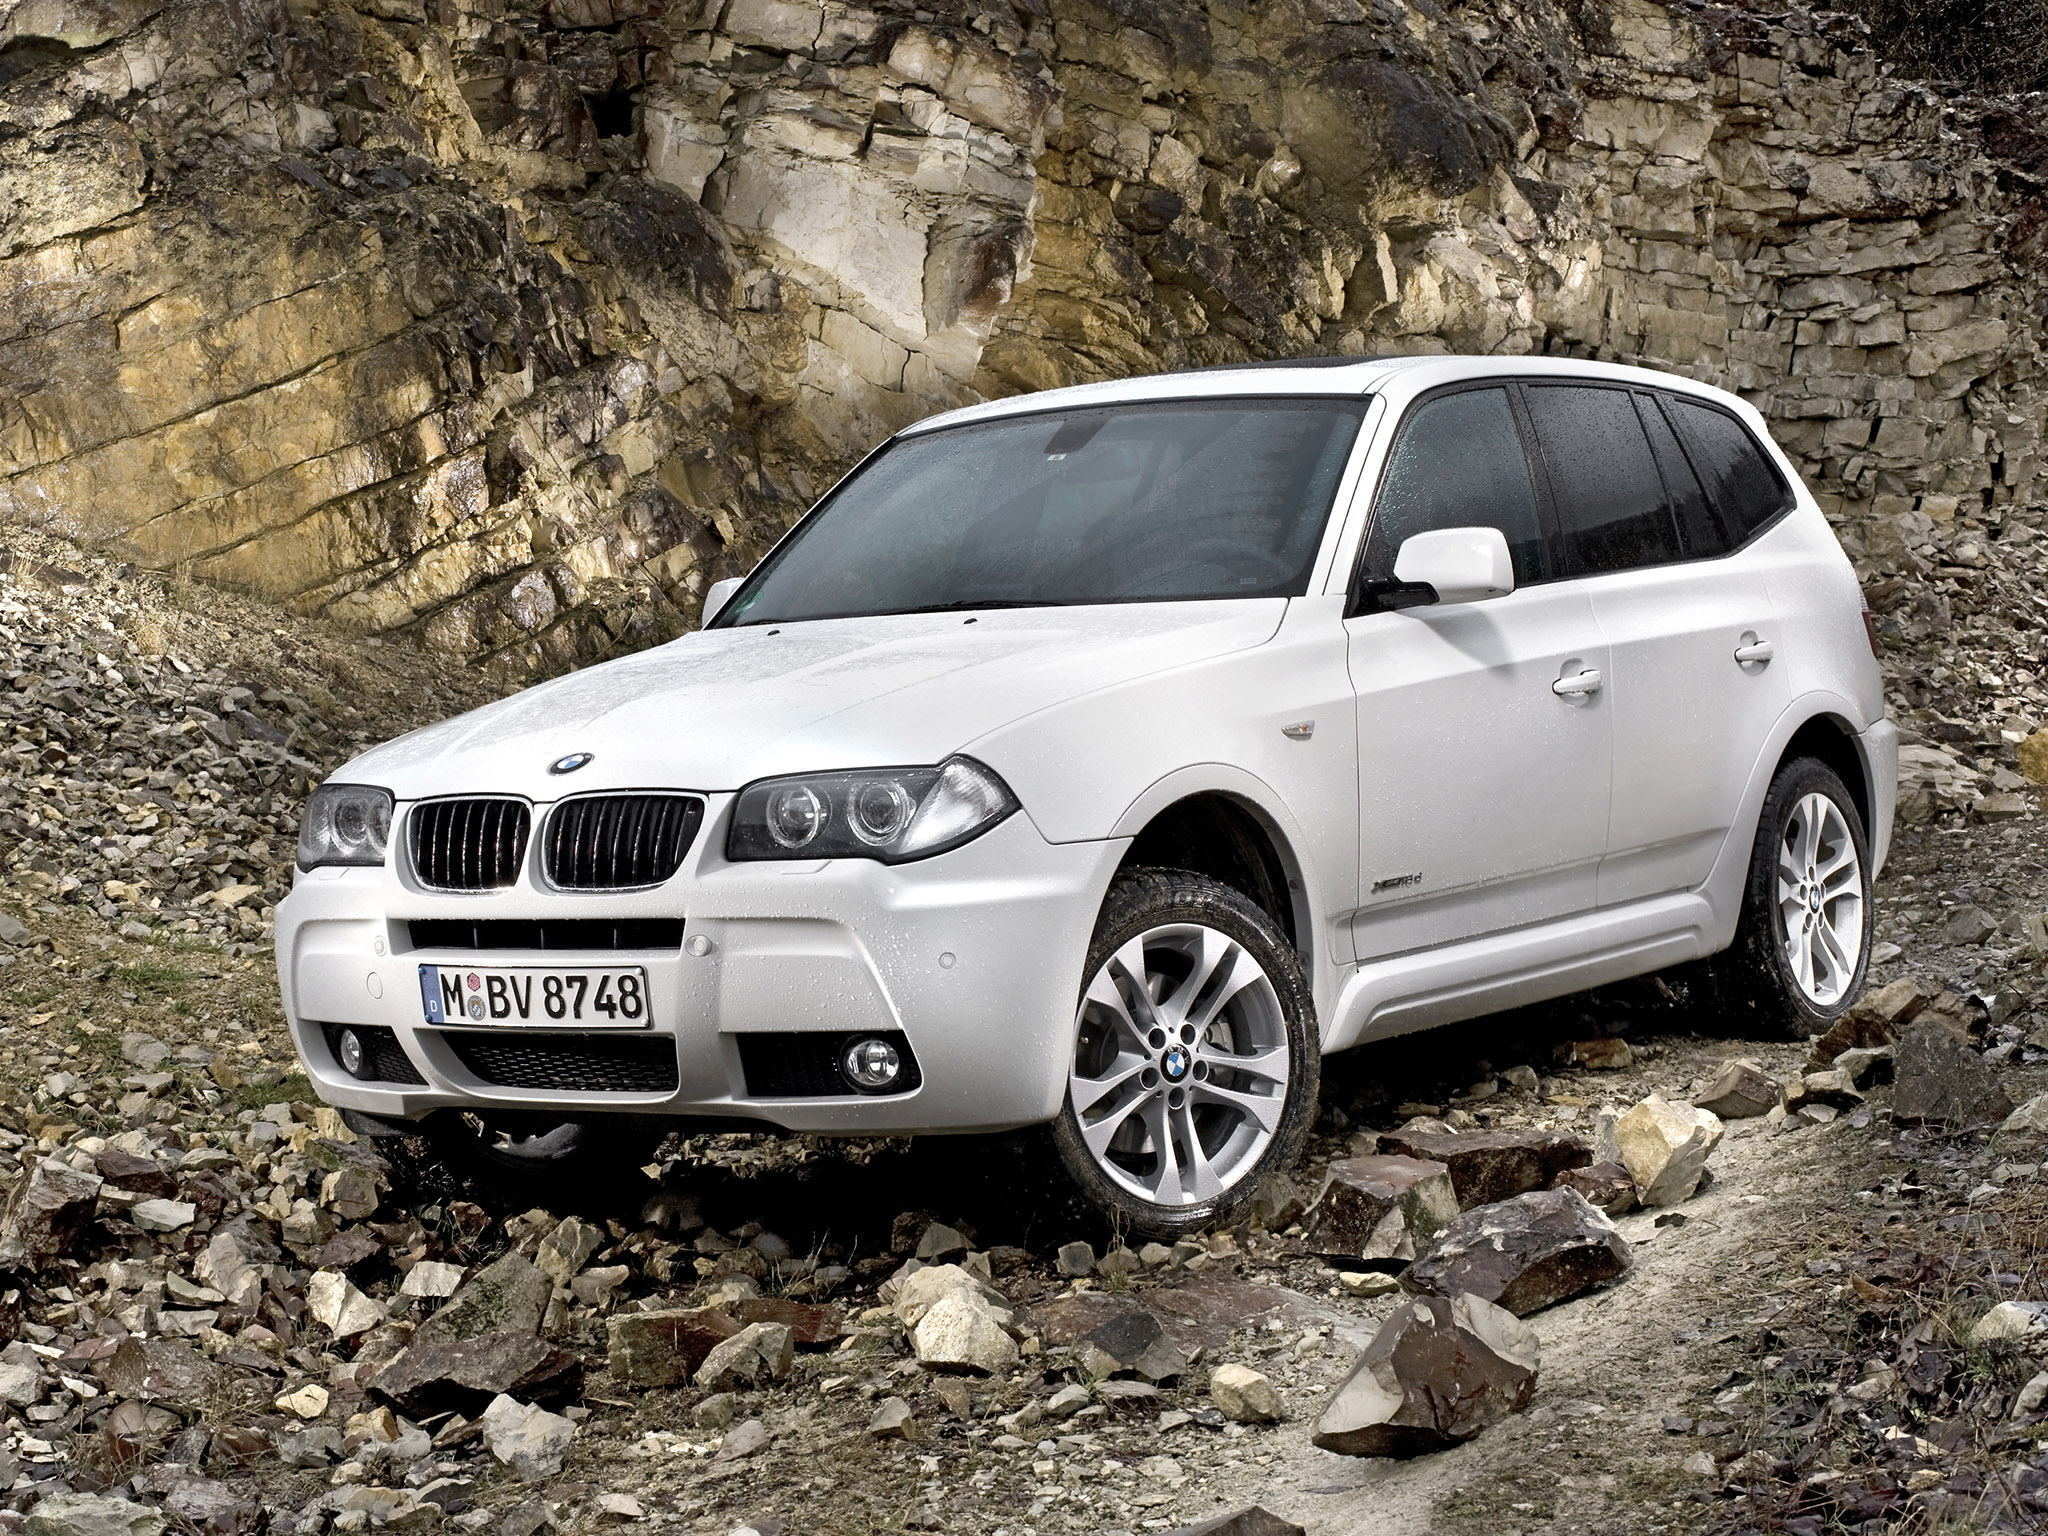 bmw x3 xdrive e83 2009 bmw x3 xdrive e83 2009 photo 17 car in pictures car photo gallery. Black Bedroom Furniture Sets. Home Design Ideas